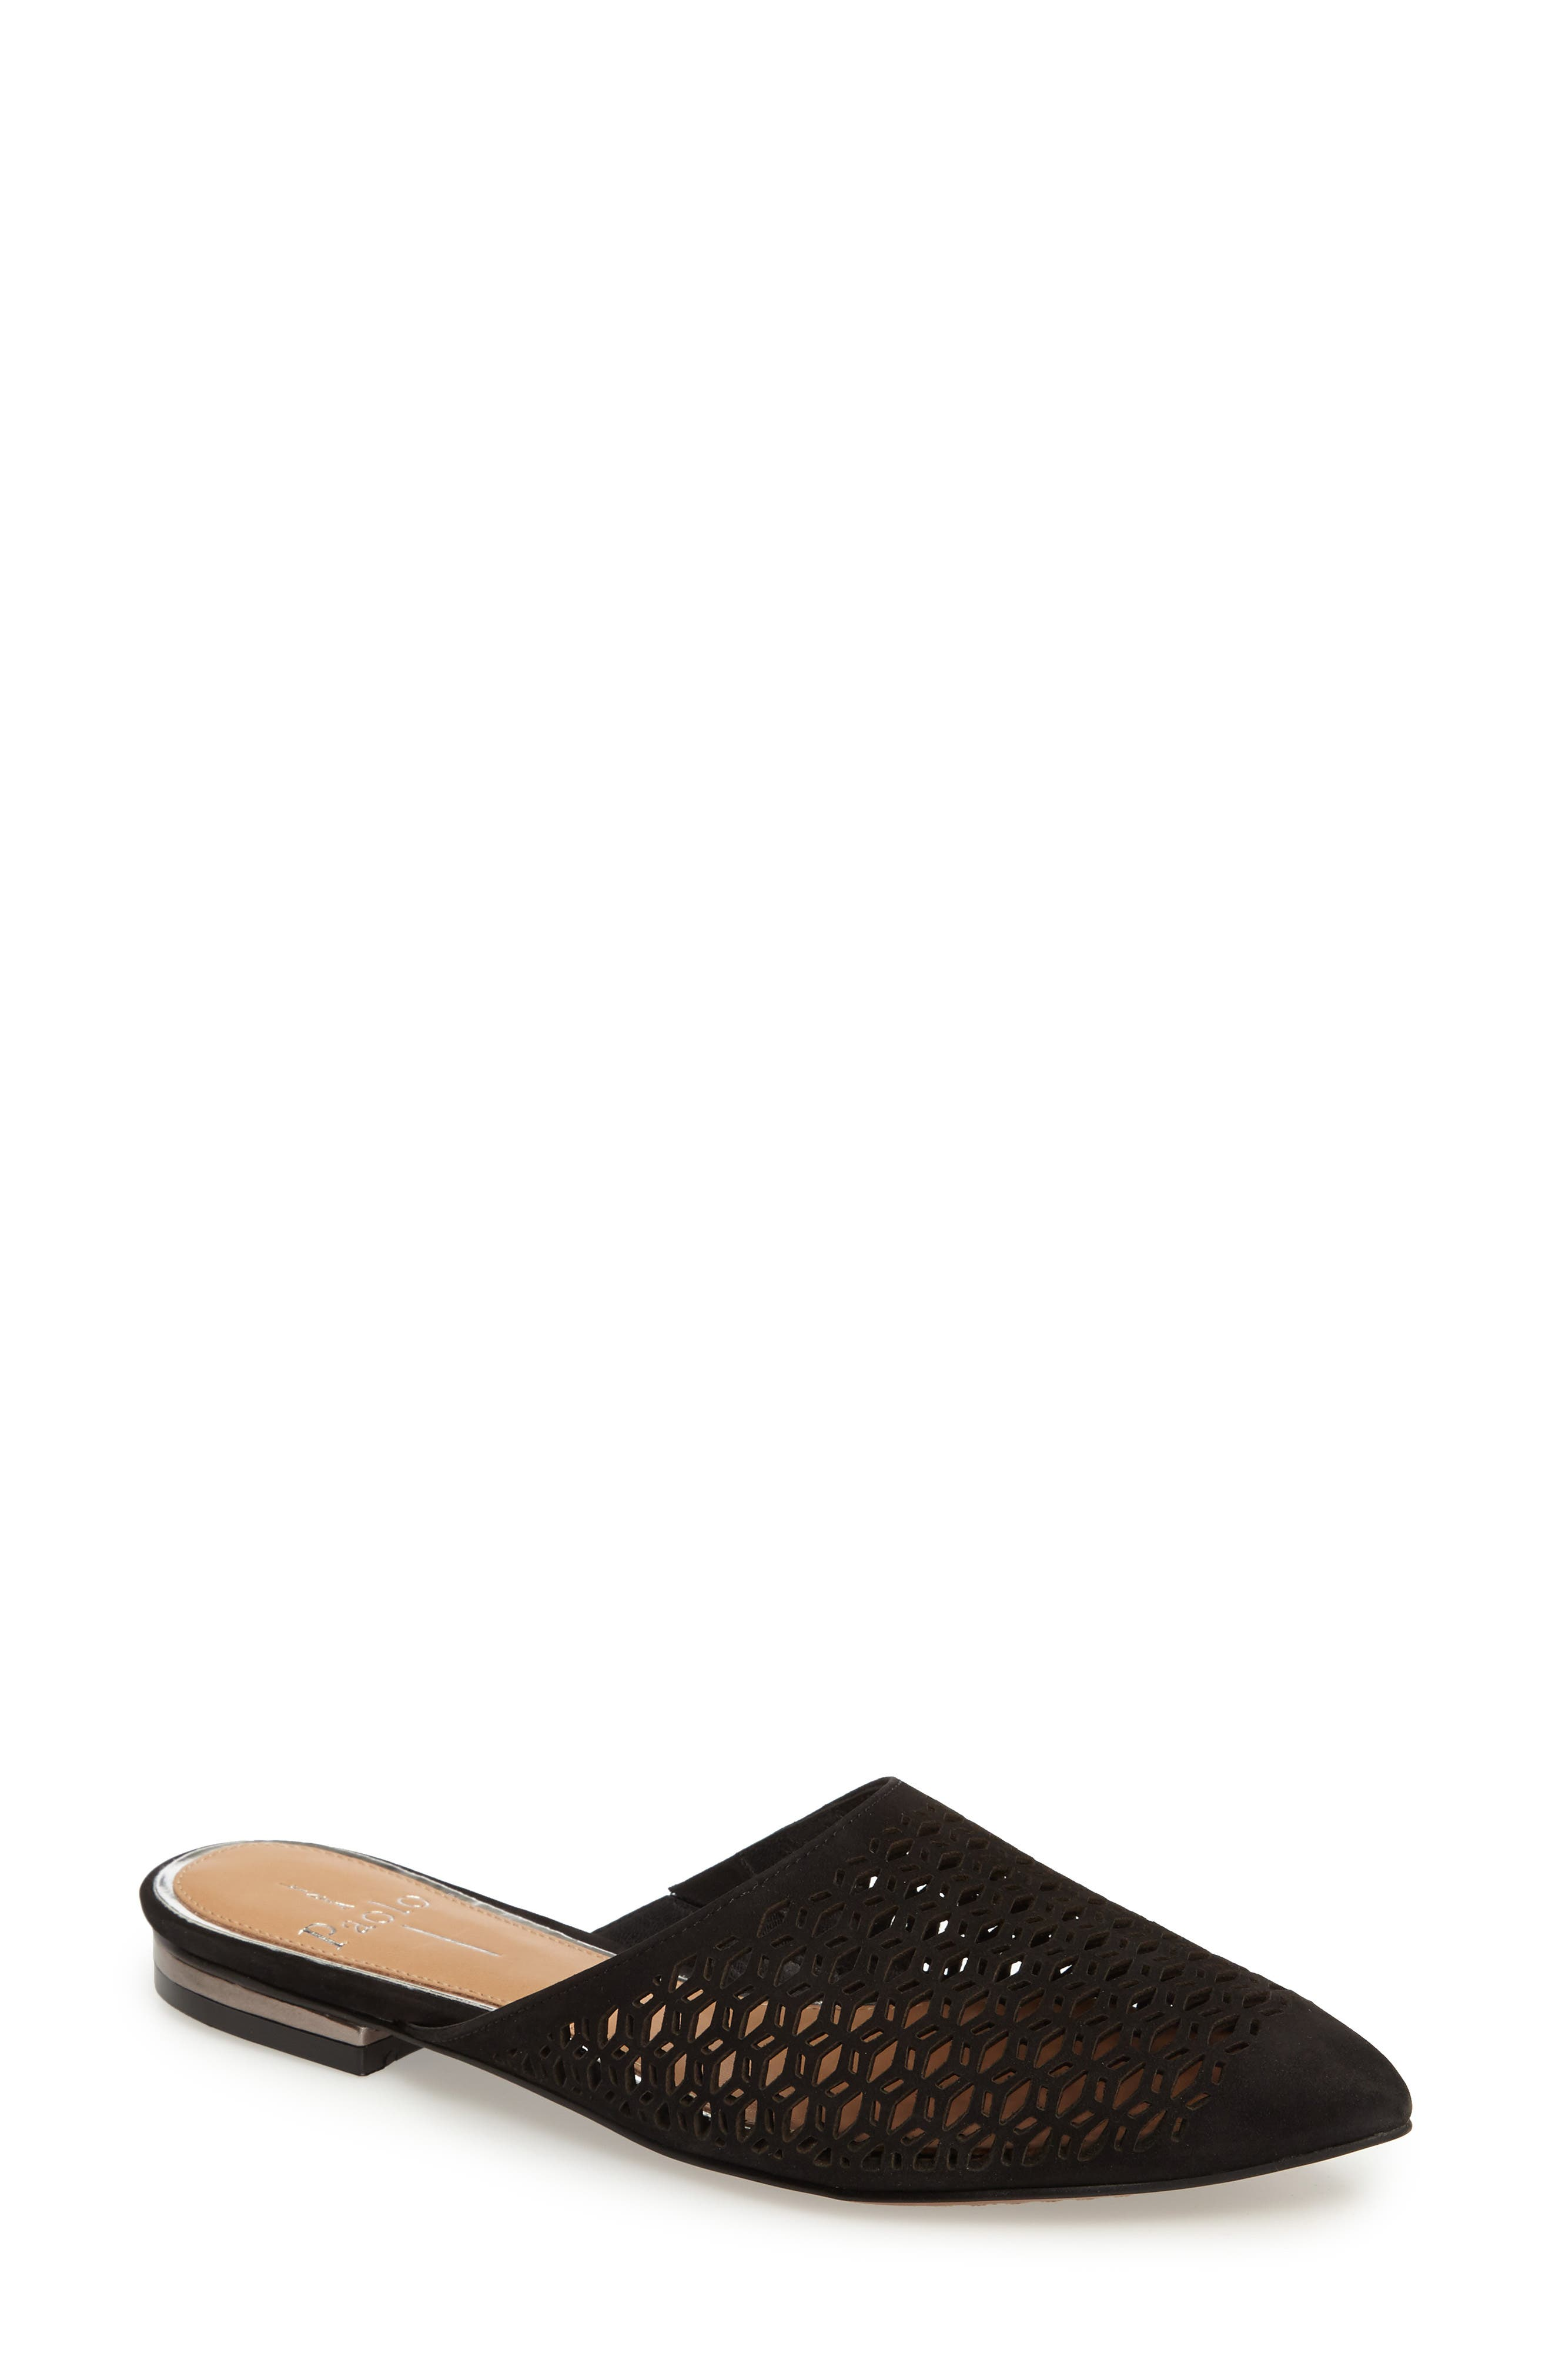 Daisy Perforated Mule,                             Main thumbnail 1, color,                             007